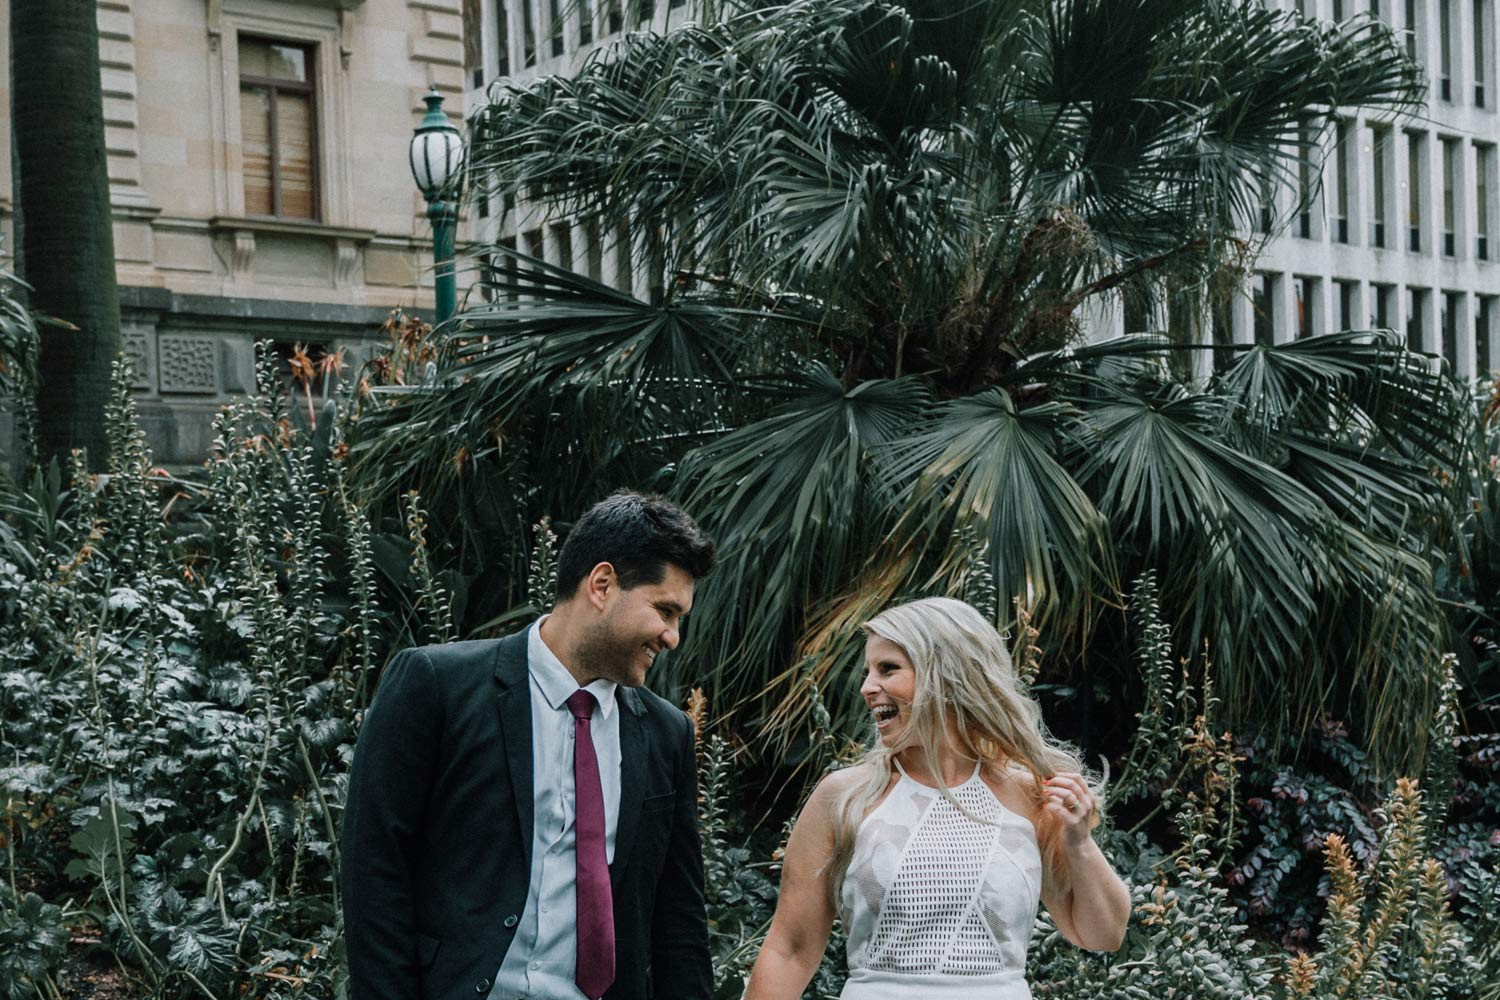 happy couple joking and laughing with each other moment captured by Melbourne wedding photographers Black Avenue Productions